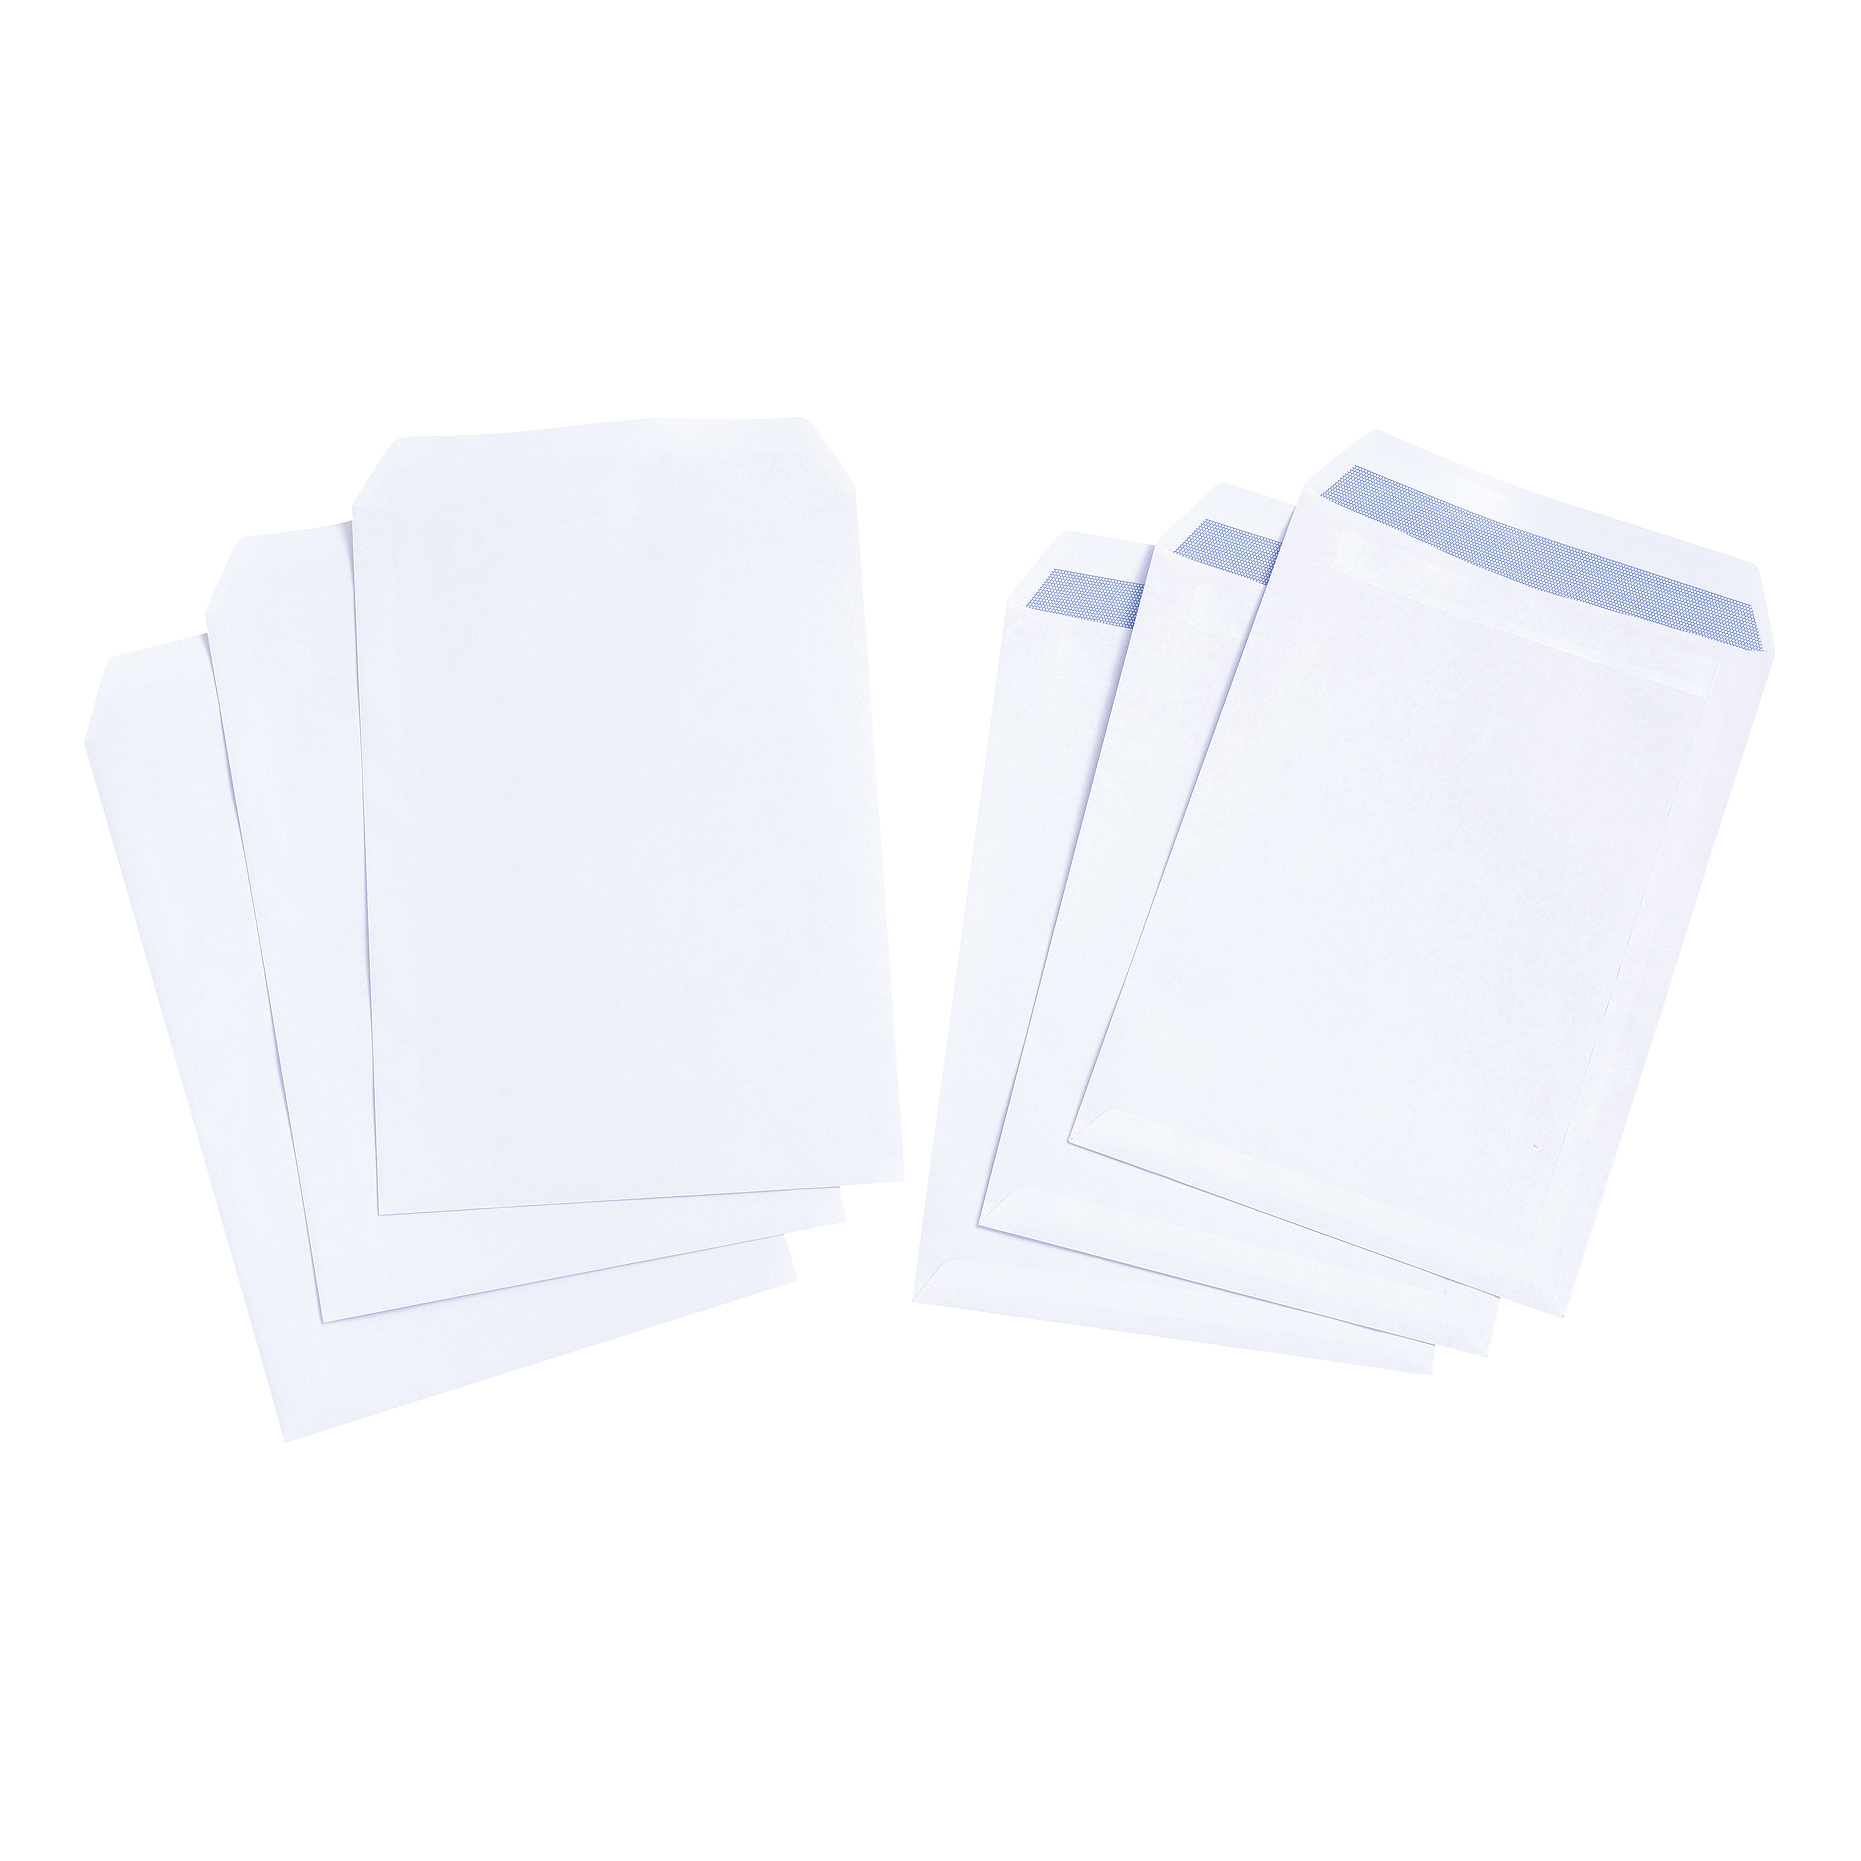 5 Star Value Envelope C4 Pocket Self Seal 90gsm White Pack 250